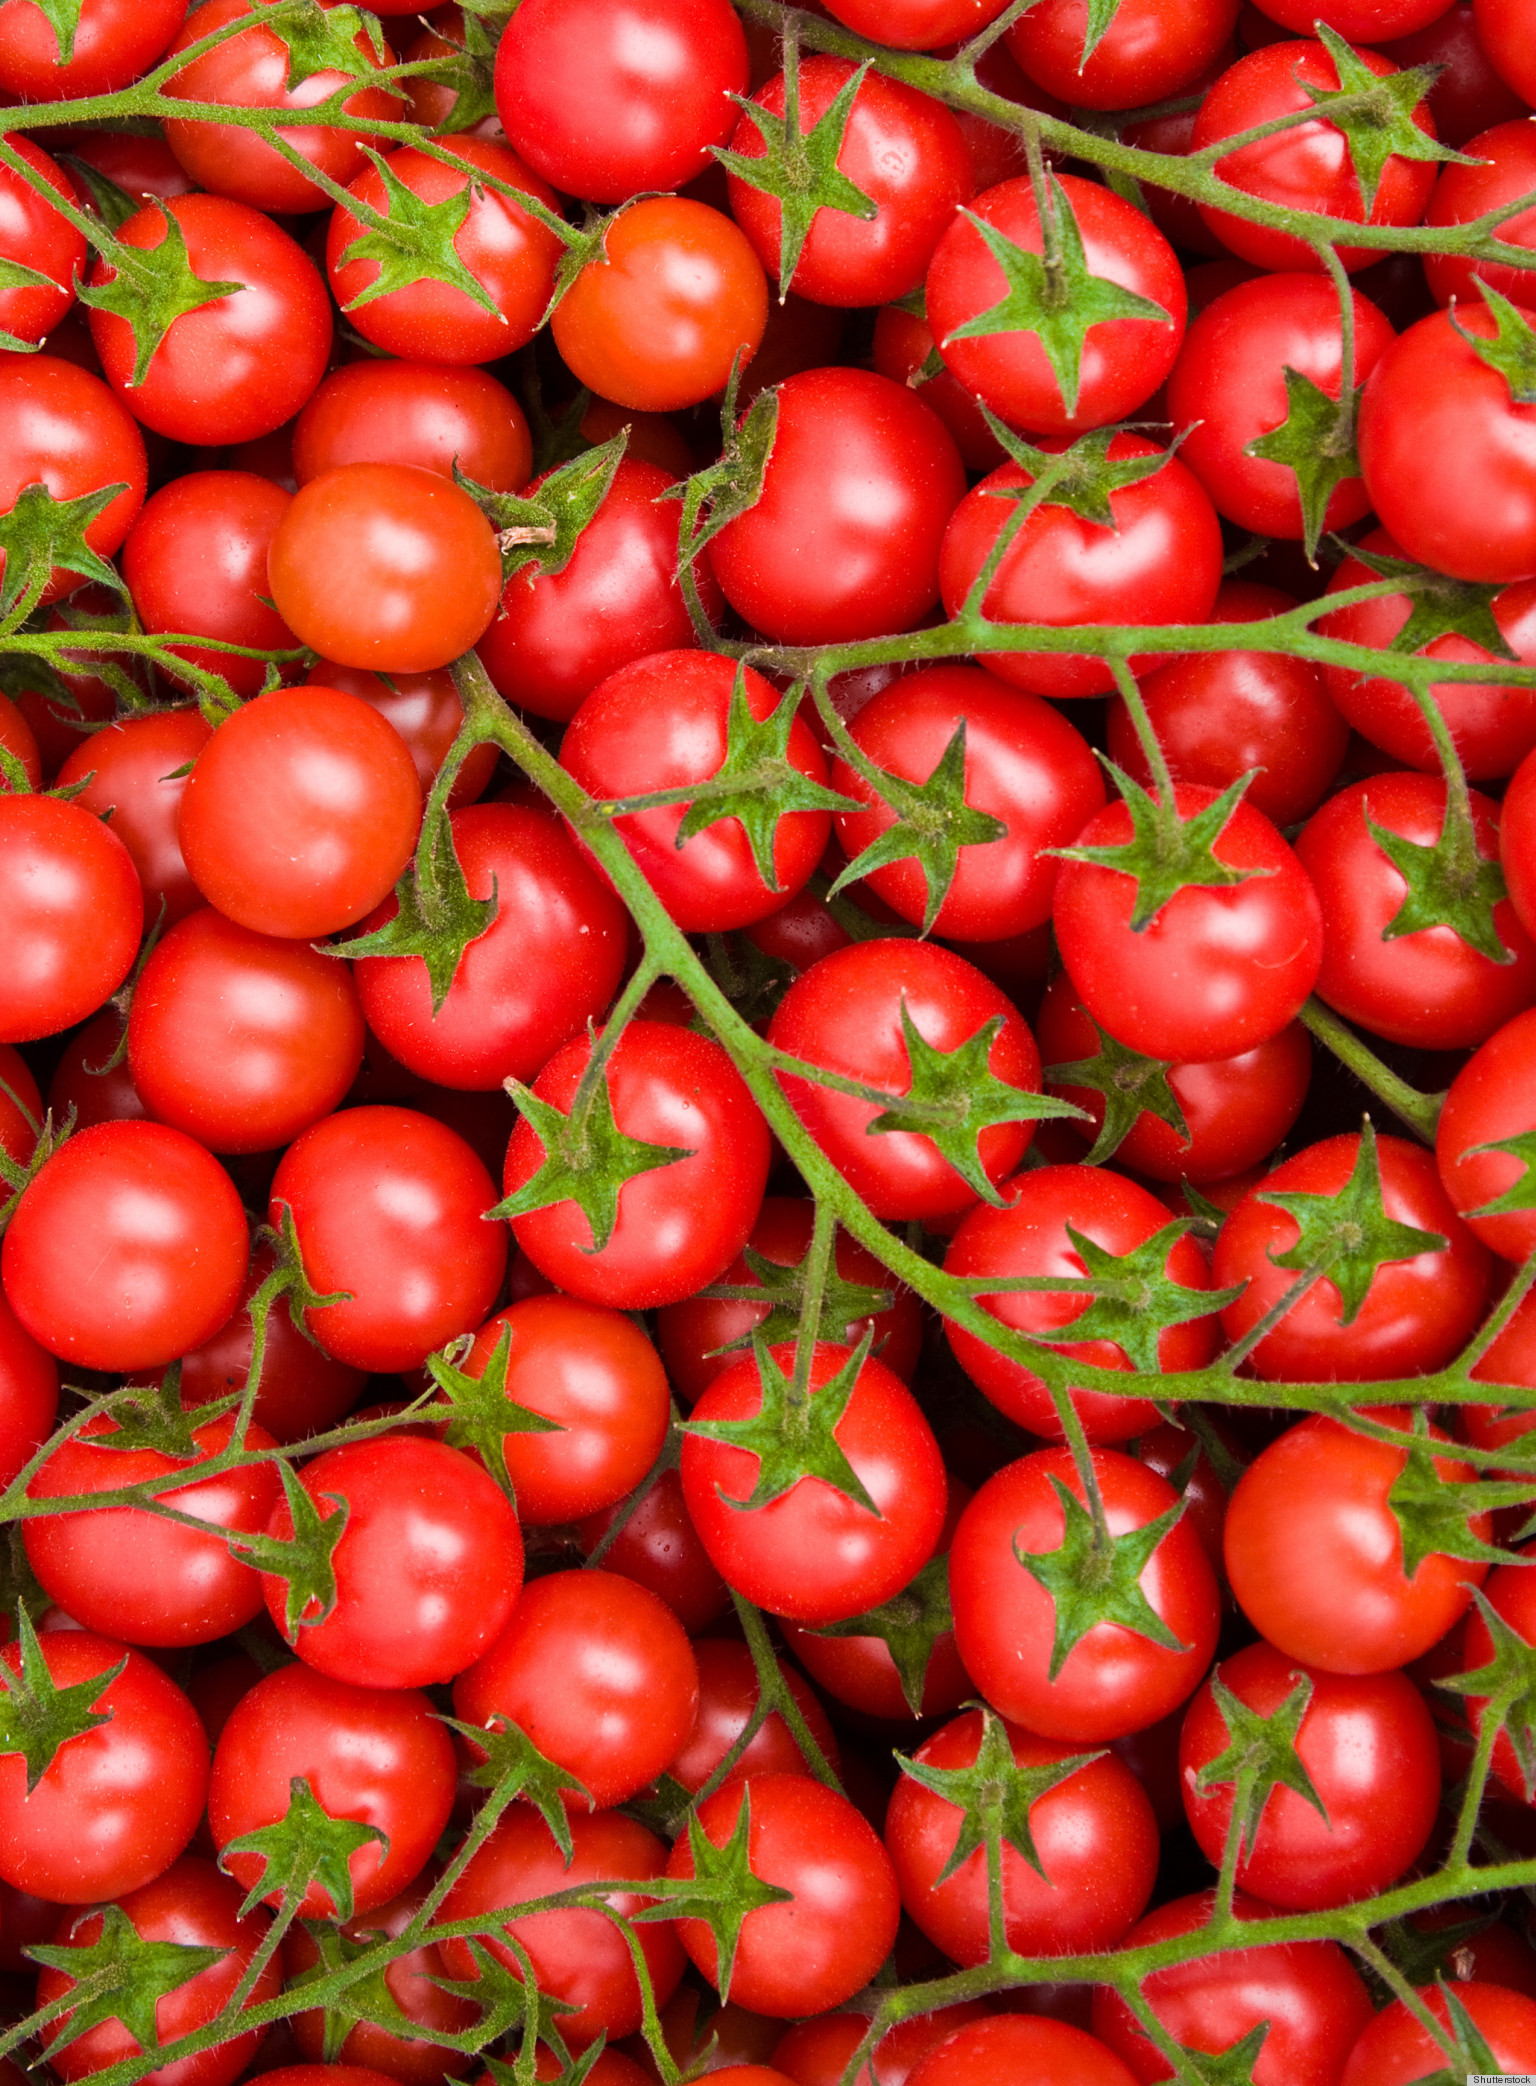 One Plant That Grows Both Tomatoes And Potatoes Trending